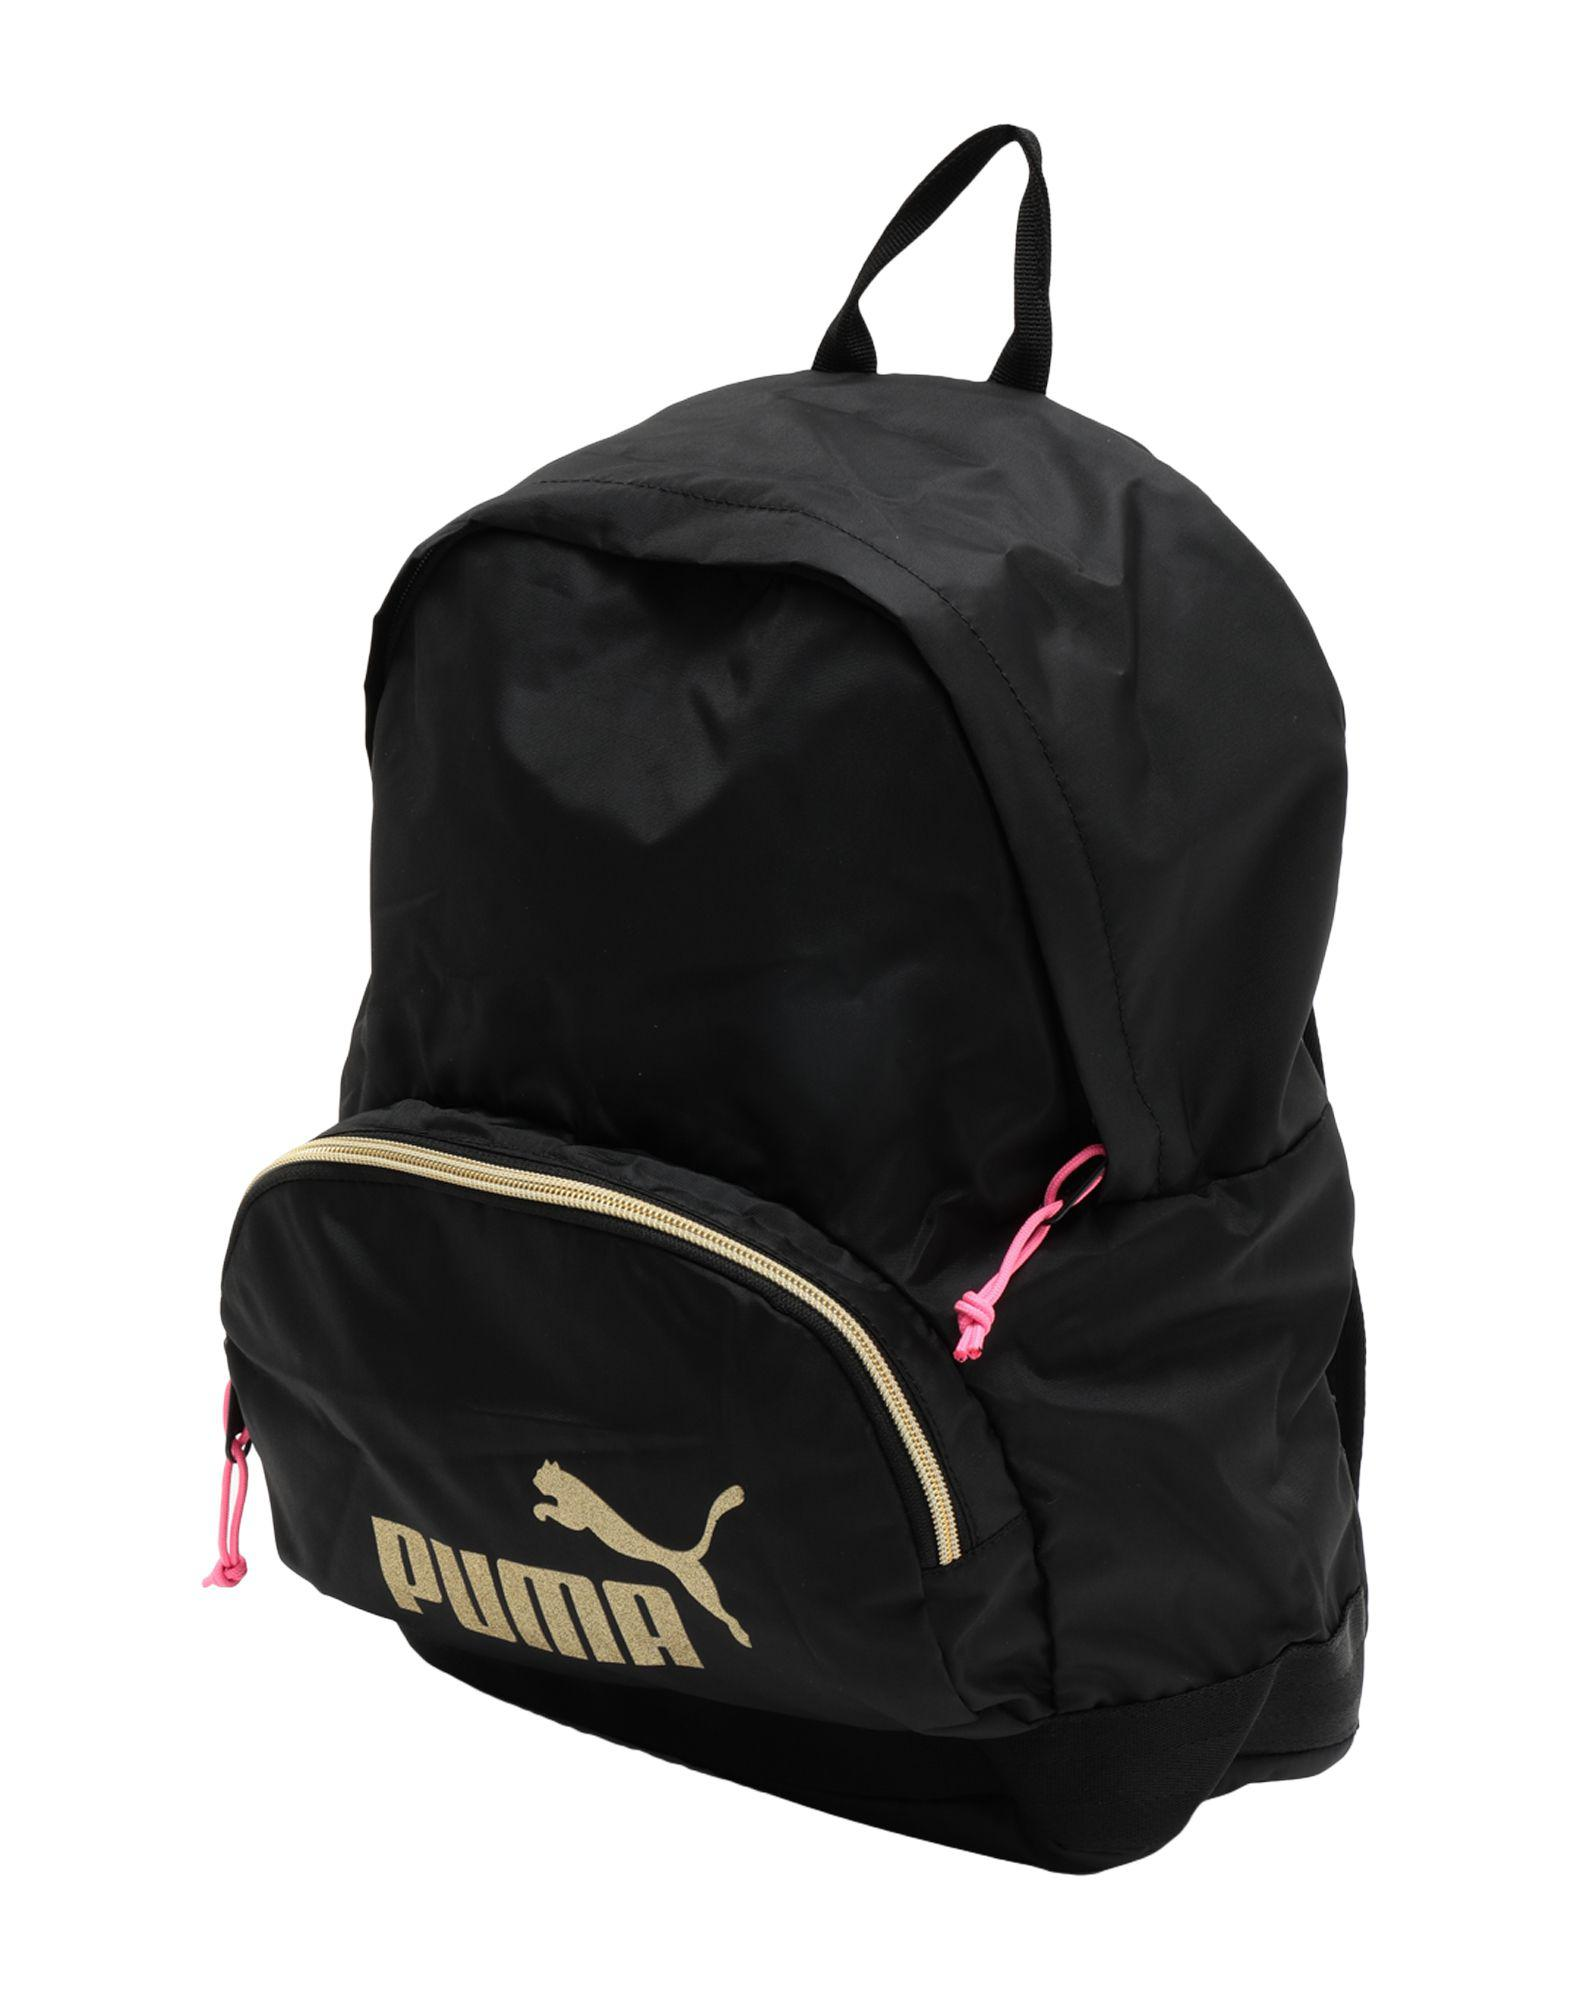 9c6250b1df Puma Backpacks   Bum Bags in Black - Lyst